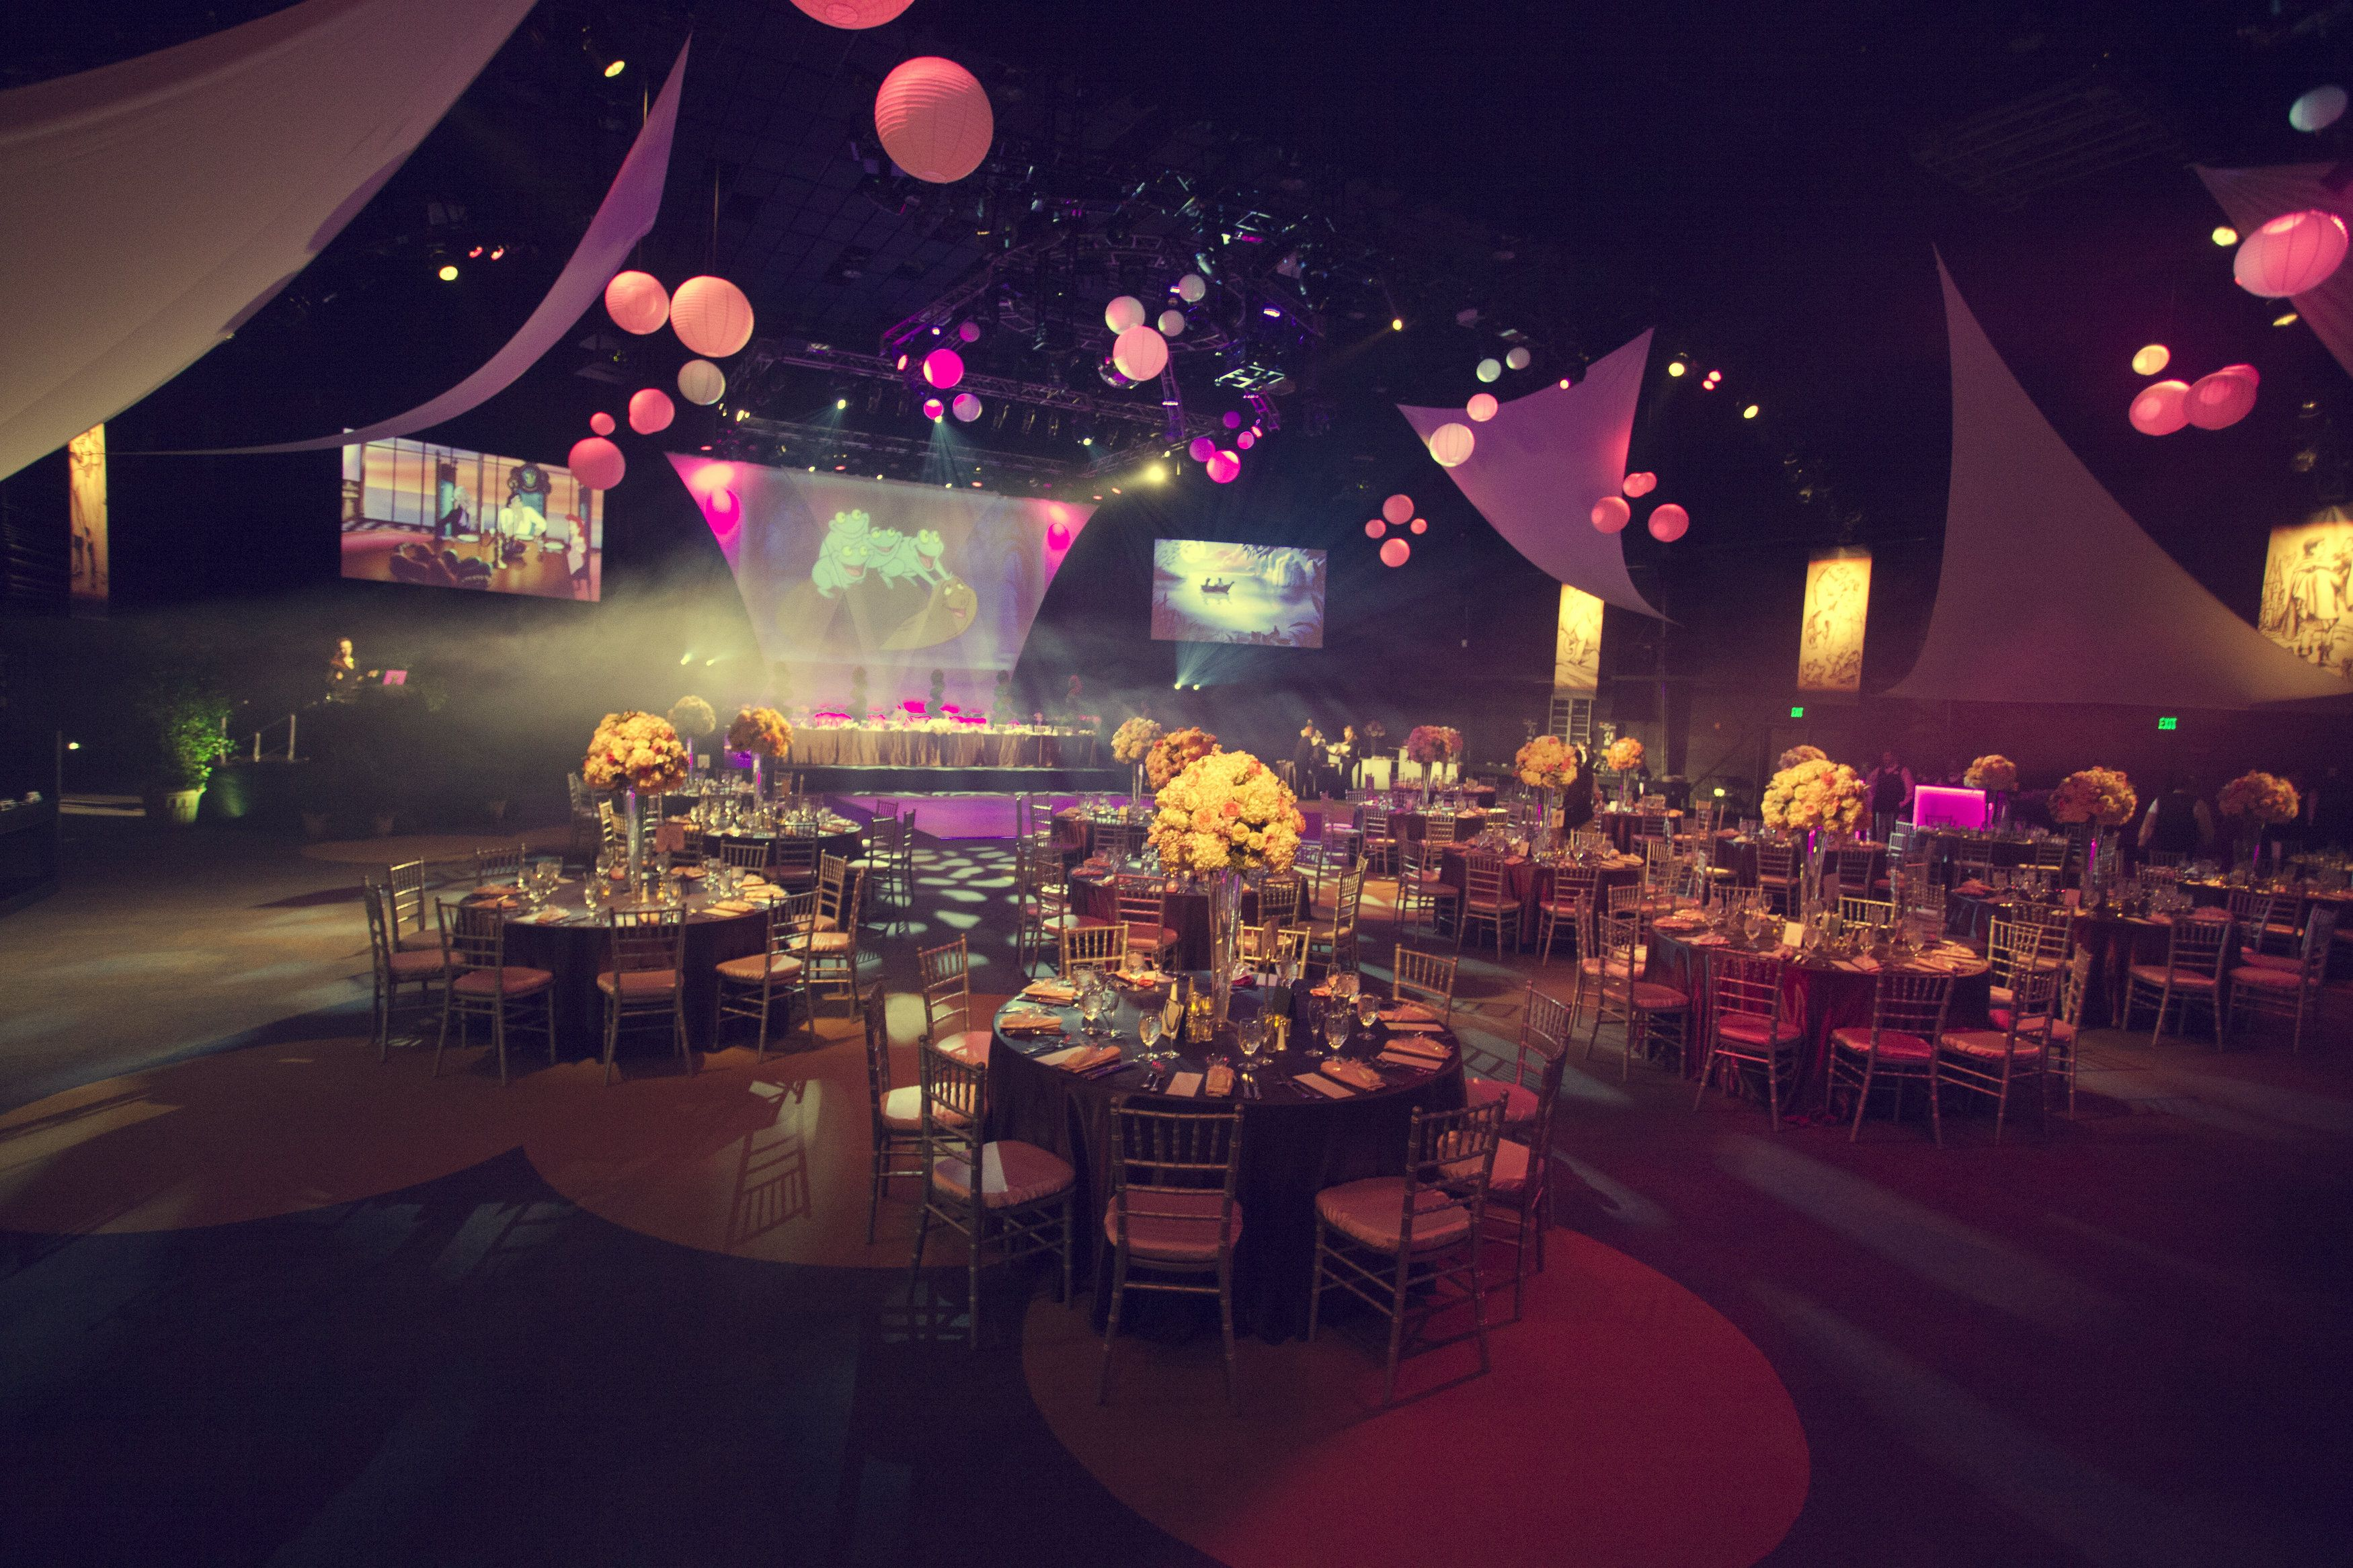 Our Reception Venue Stage 17 At California Adventure Disney Weddingssweet